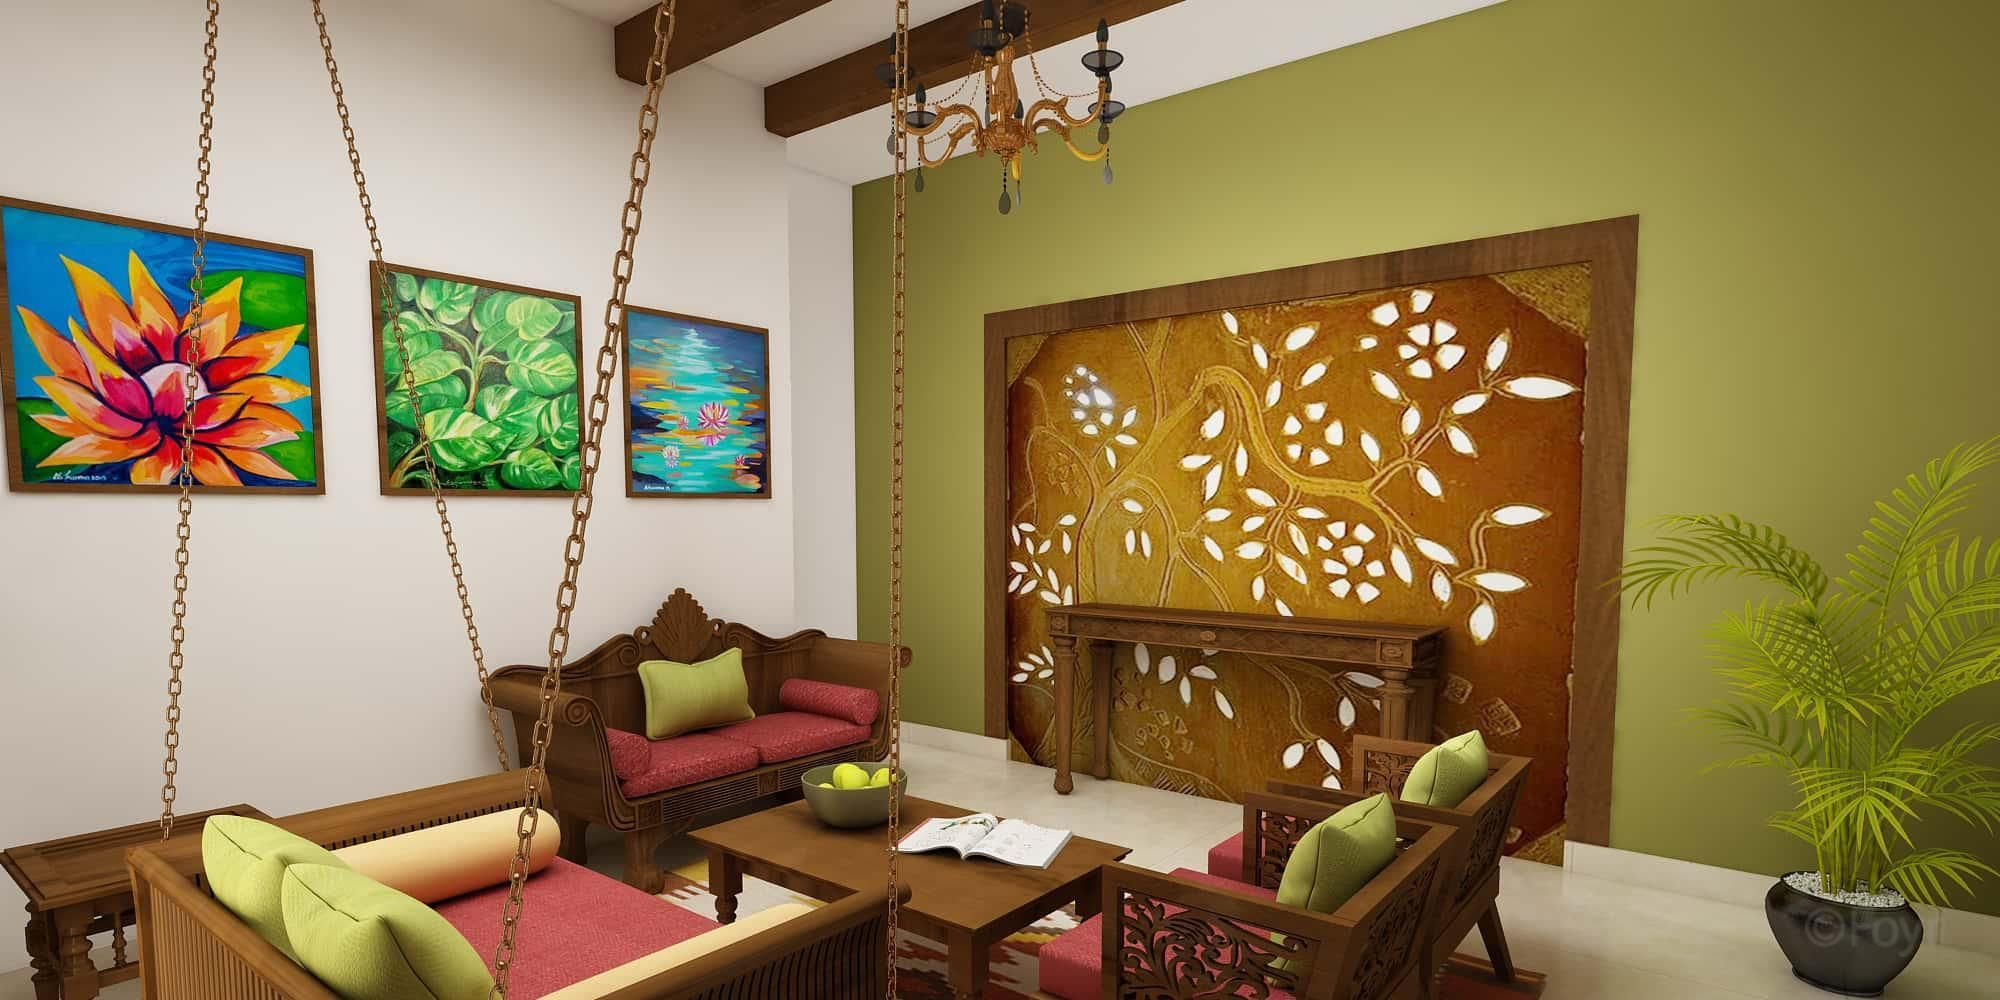 High Quality 20+ Amazing Living Room Designs Indian Style, Interior Design And Decor  Inspiration   ARCHLUX.NET